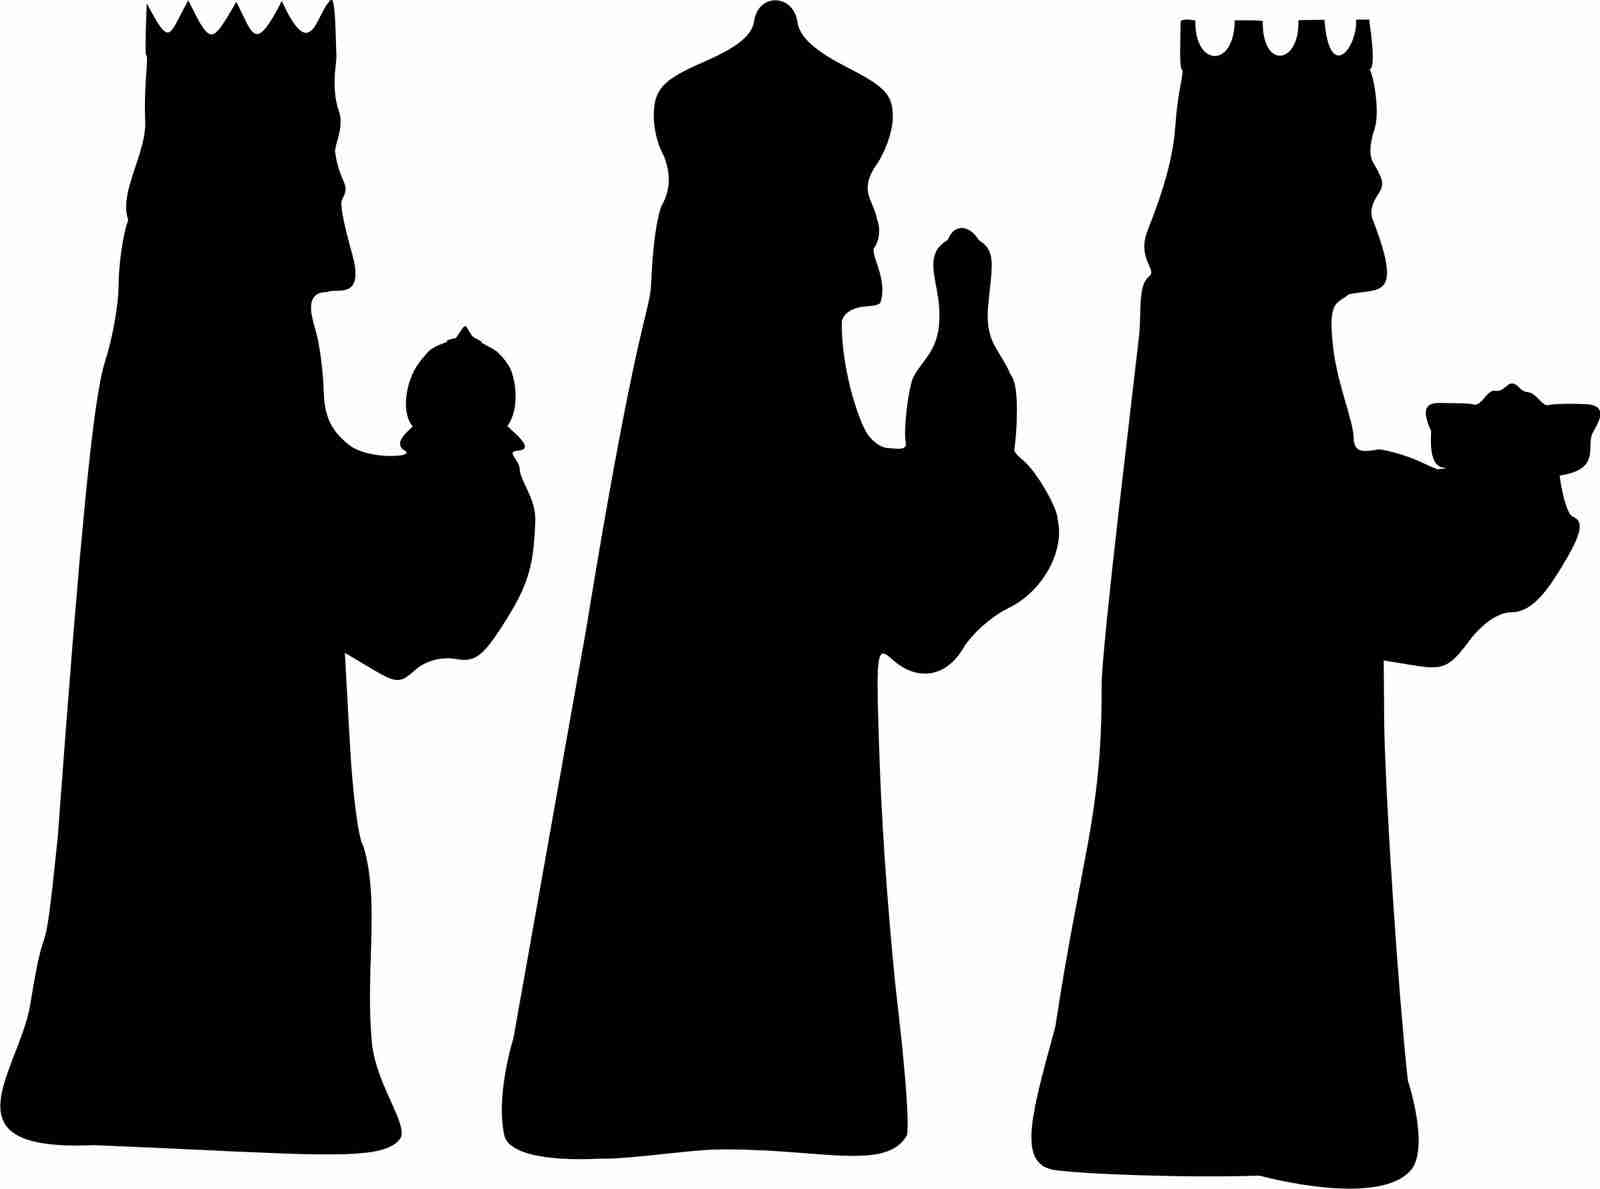 Wise Men Silhouette at GetDrawings.com.